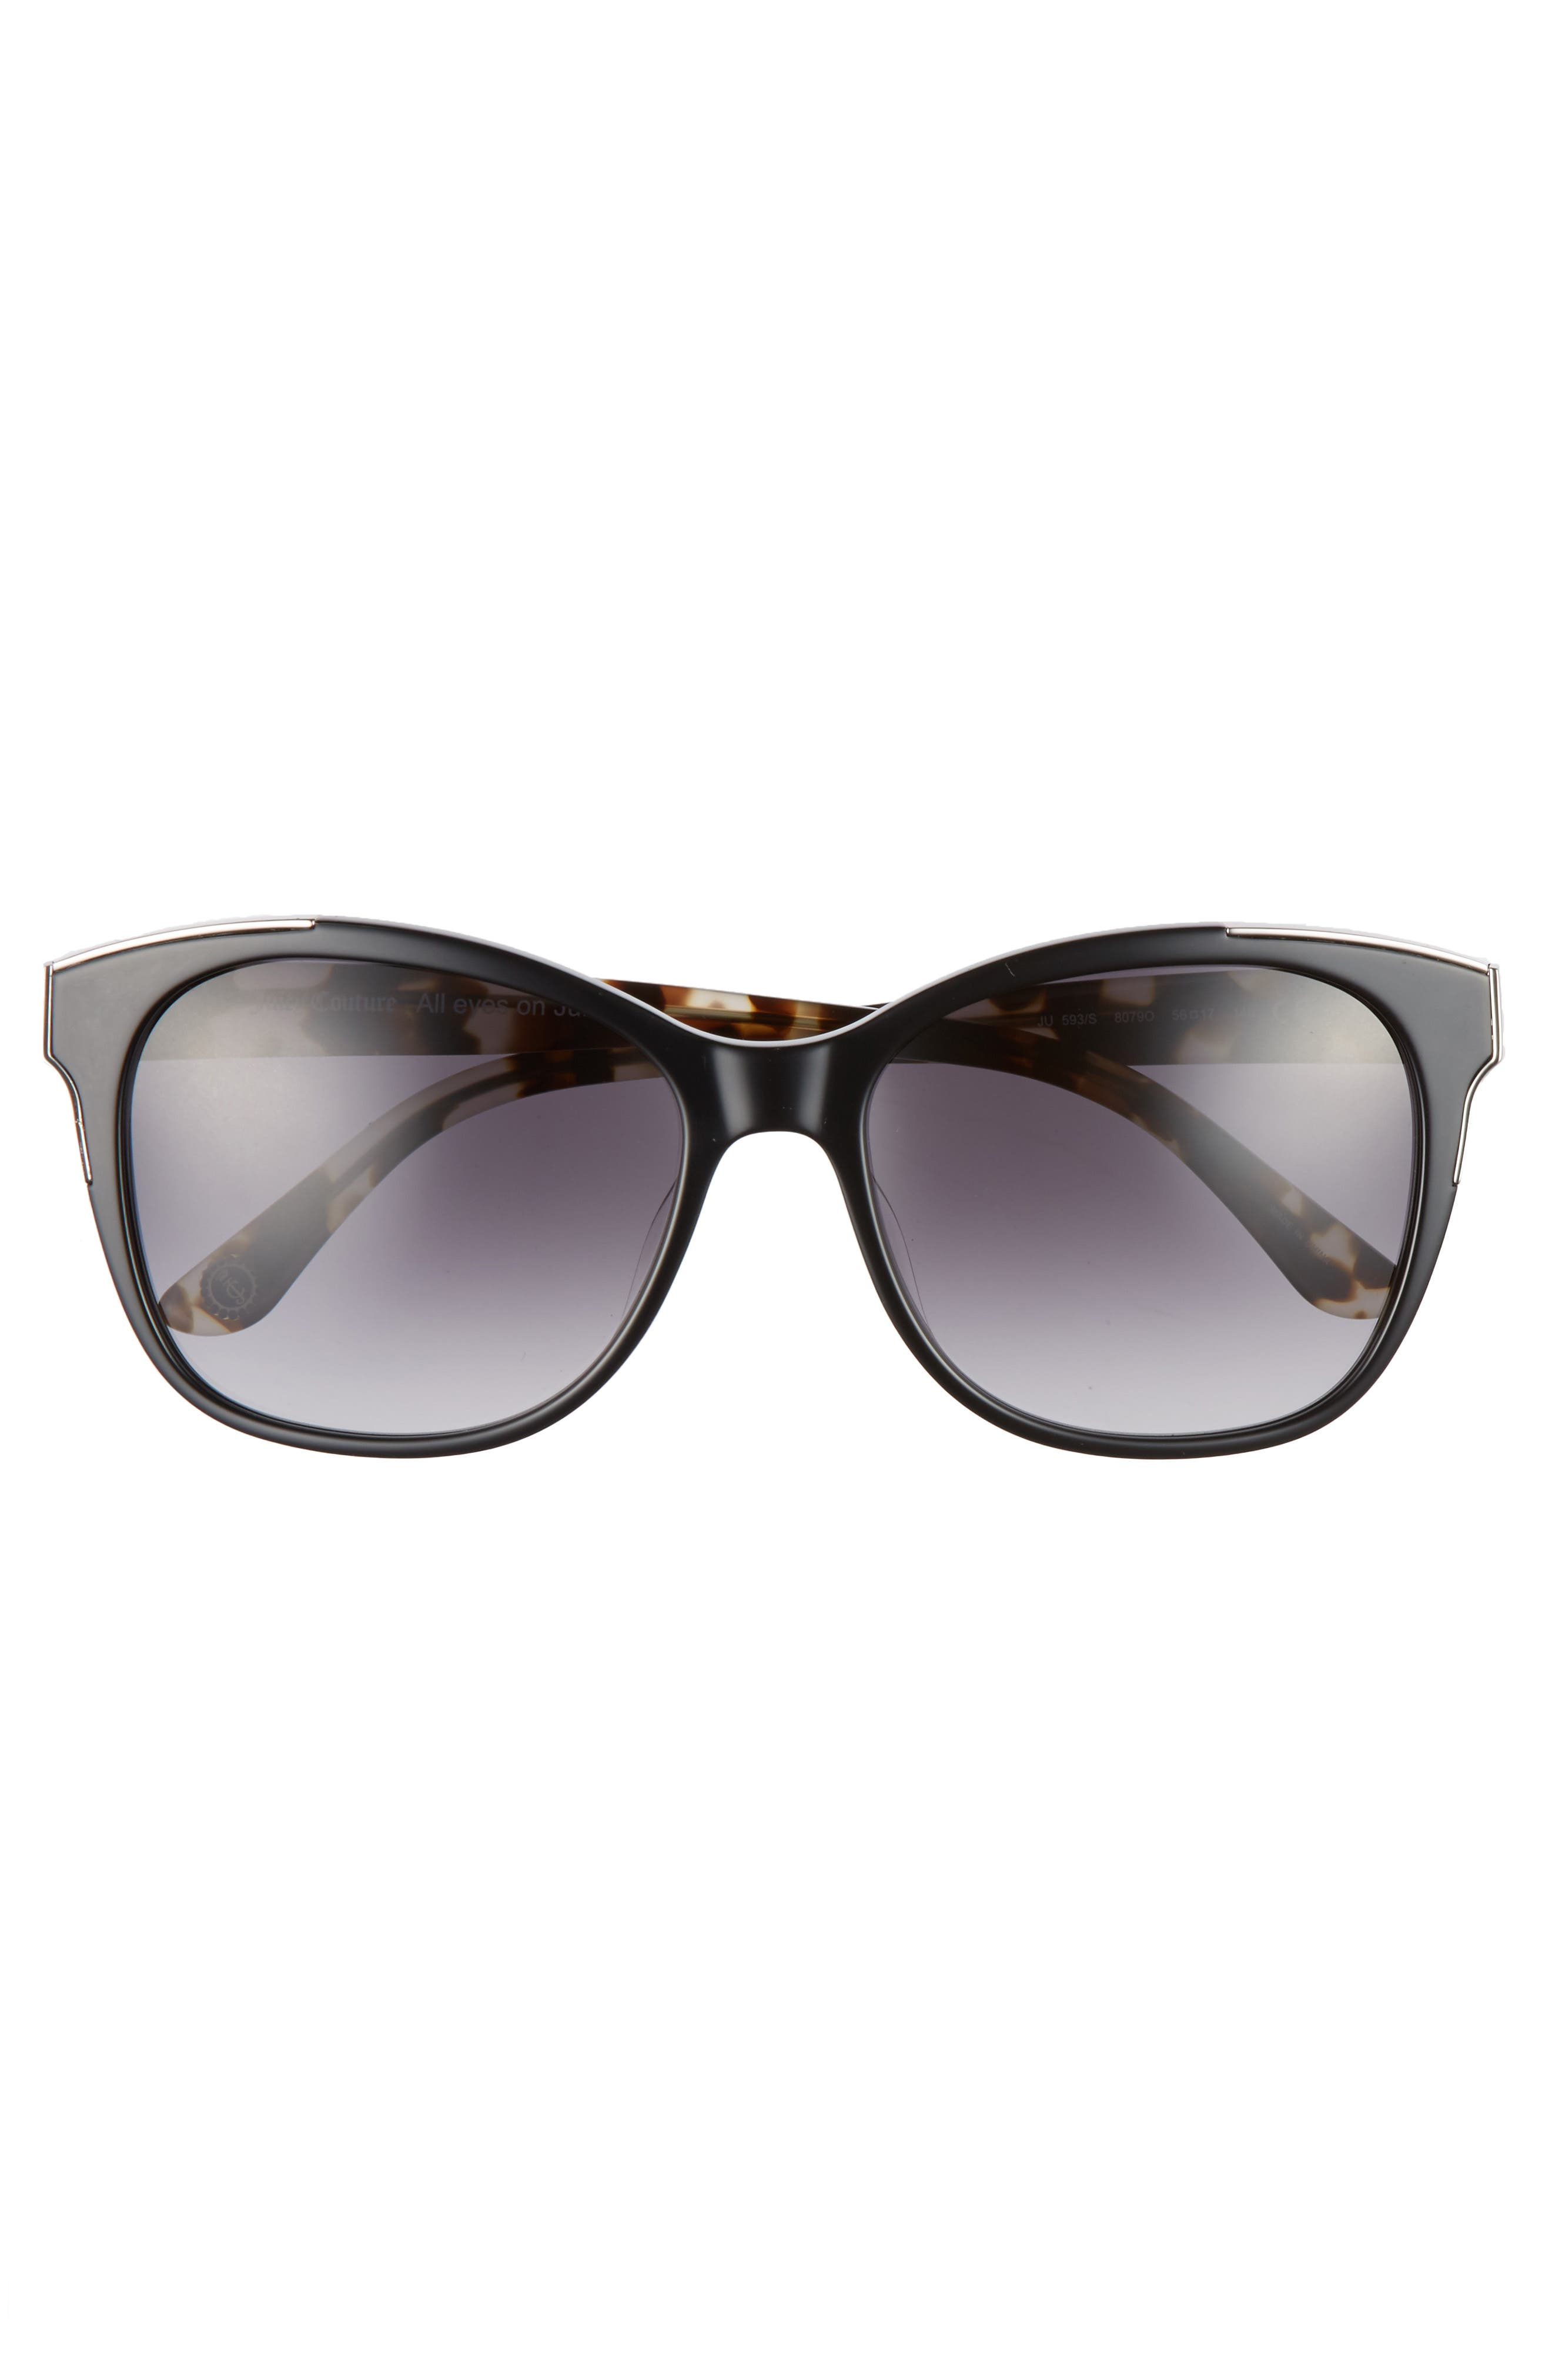 Black Label 56mm Cat Eye Sunglasses,                             Alternate thumbnail 3, color,                             BLACK